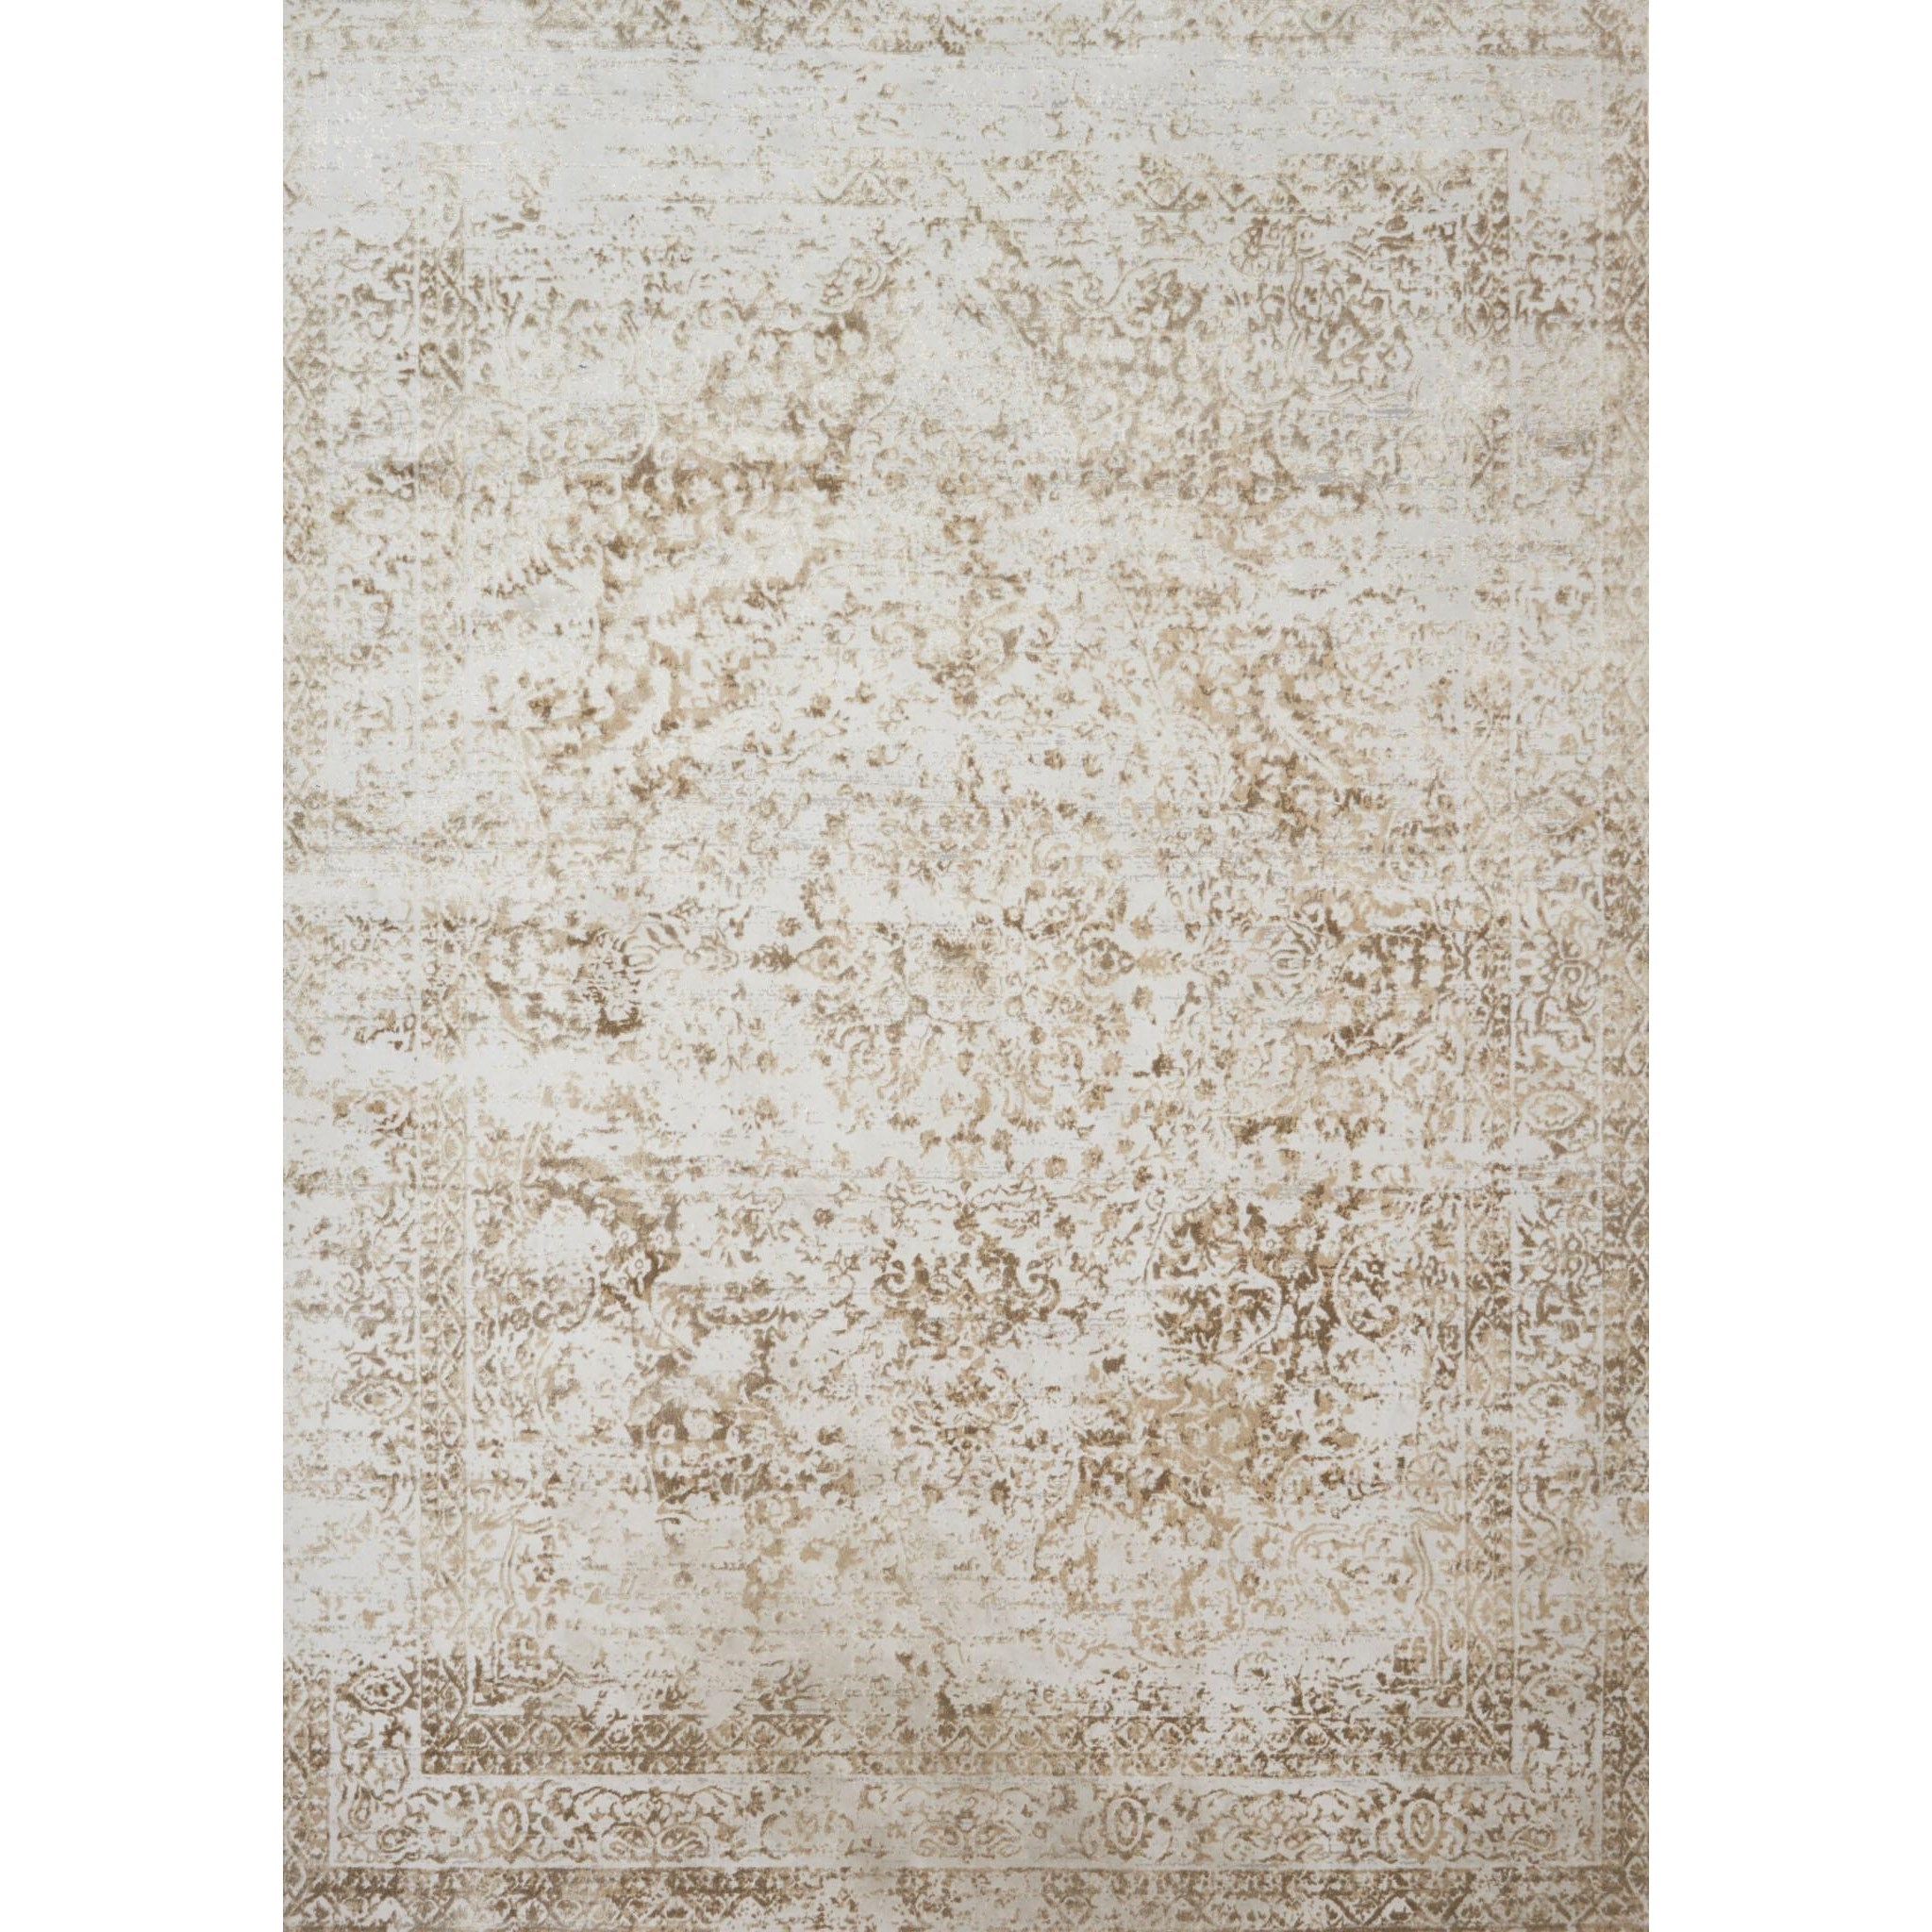 """Patina 2'-7"""" X 4' Area Rug by Loloi Rugs at Sprintz Furniture"""